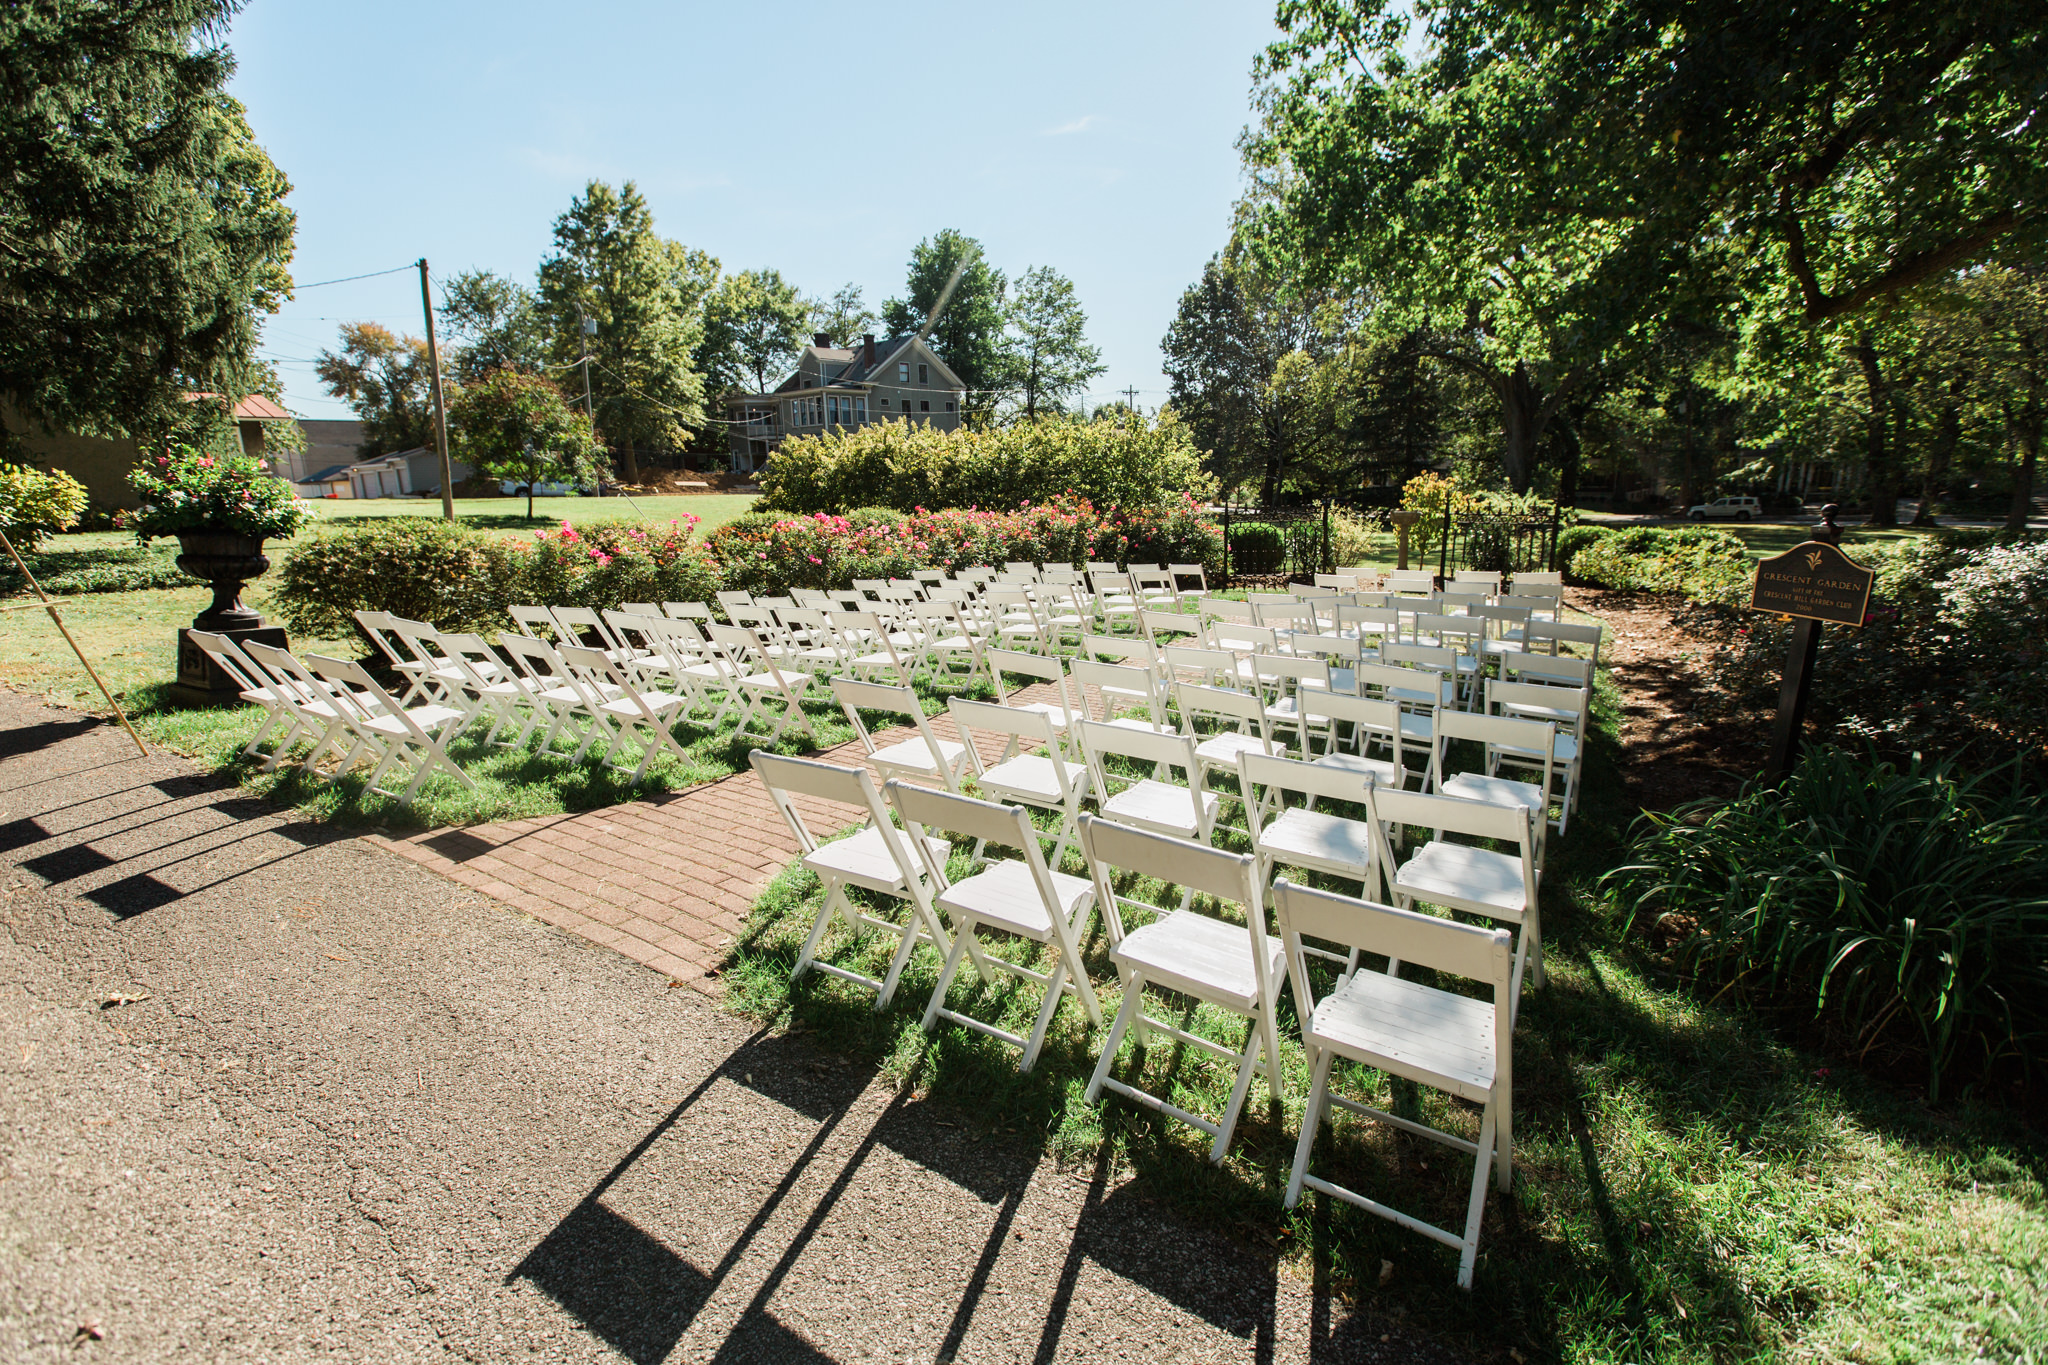 Peterson-Dumesnil House Outdoor Wedding Ceremony Location